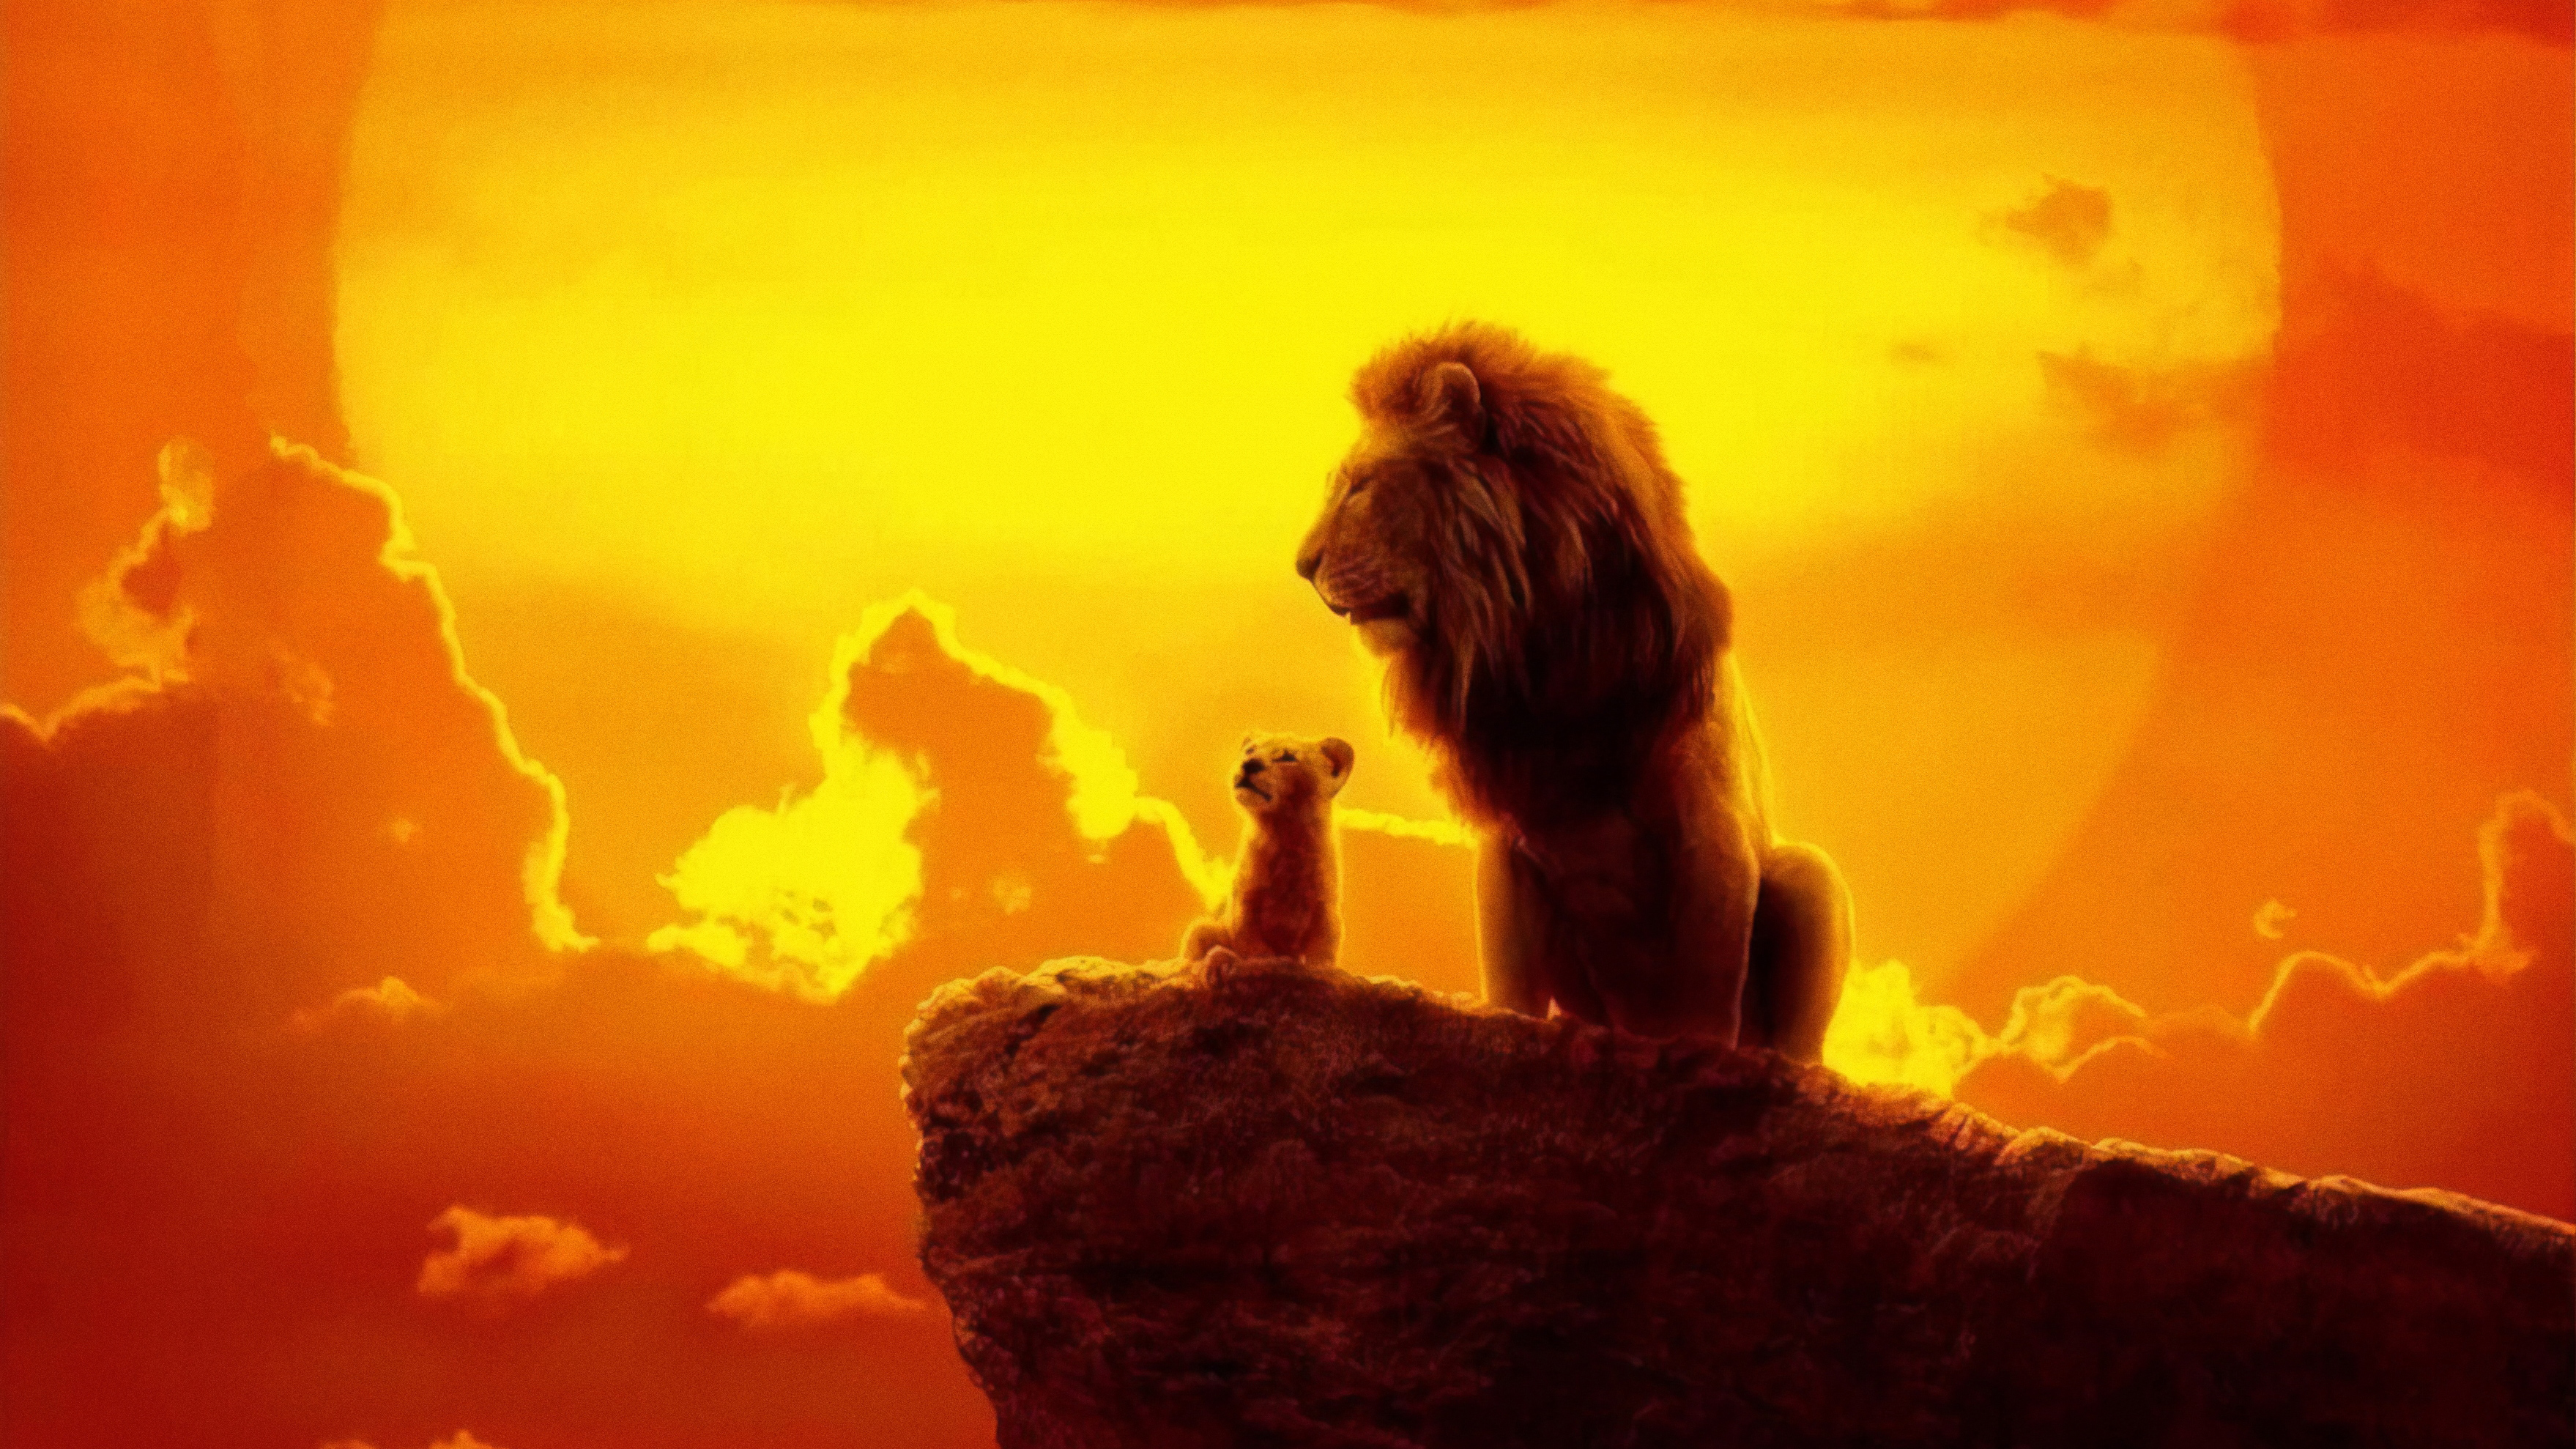 the lion king full movie 2019 download